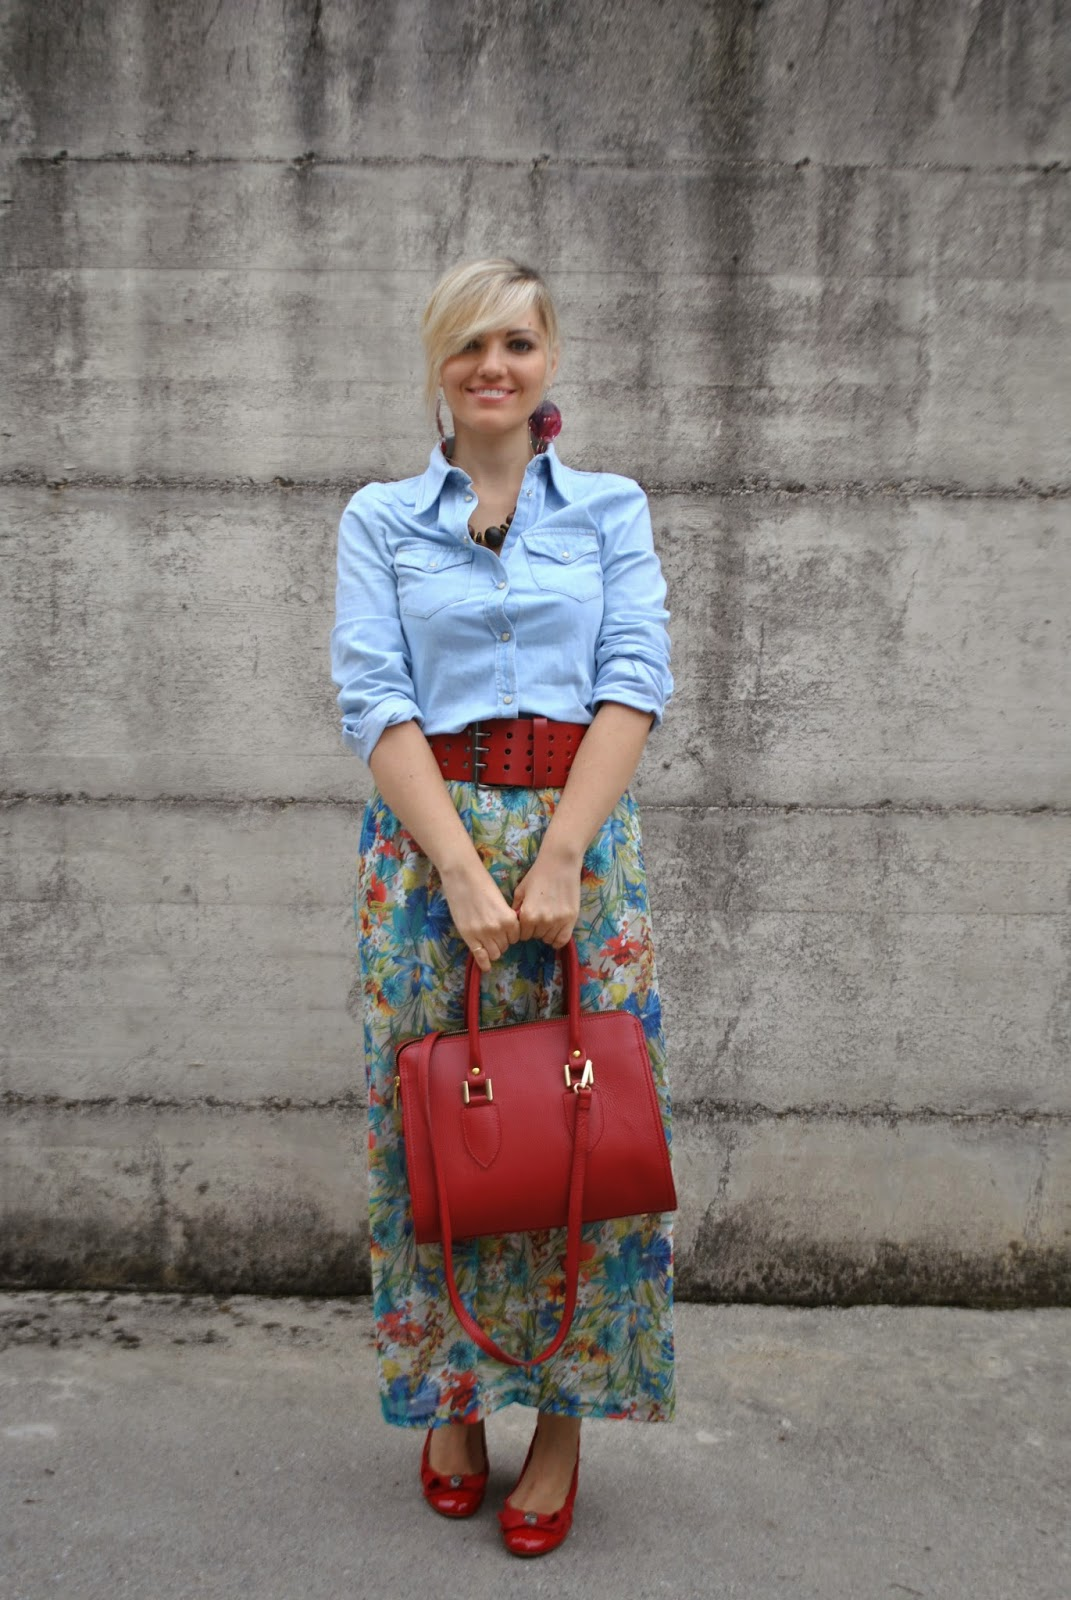 outfit gonna lunga a fiori e camicia in denim come abbinare la gonna stampa a fiori abbinamenti gonna stampa a fiori abbinamenti long skirt come indossare la gonna lunga outfit gonna lunga outfit long skirt outfit camicia jeans come abbinare la camicia jeans outfit borsa rossa come abbinare la borsa rossa abbinamenti borsa rossa outfit scarpe rosse outfit ballerine rosse ballerine rosse fornarina orecchini modi e mode outfit luglio 2014 outfit estate 2014 outfit estivi outfit mariafelicia magno fashion blogger di colorblock by felym fashion blogger bionde fashion blogger italiane fashion blogger milano